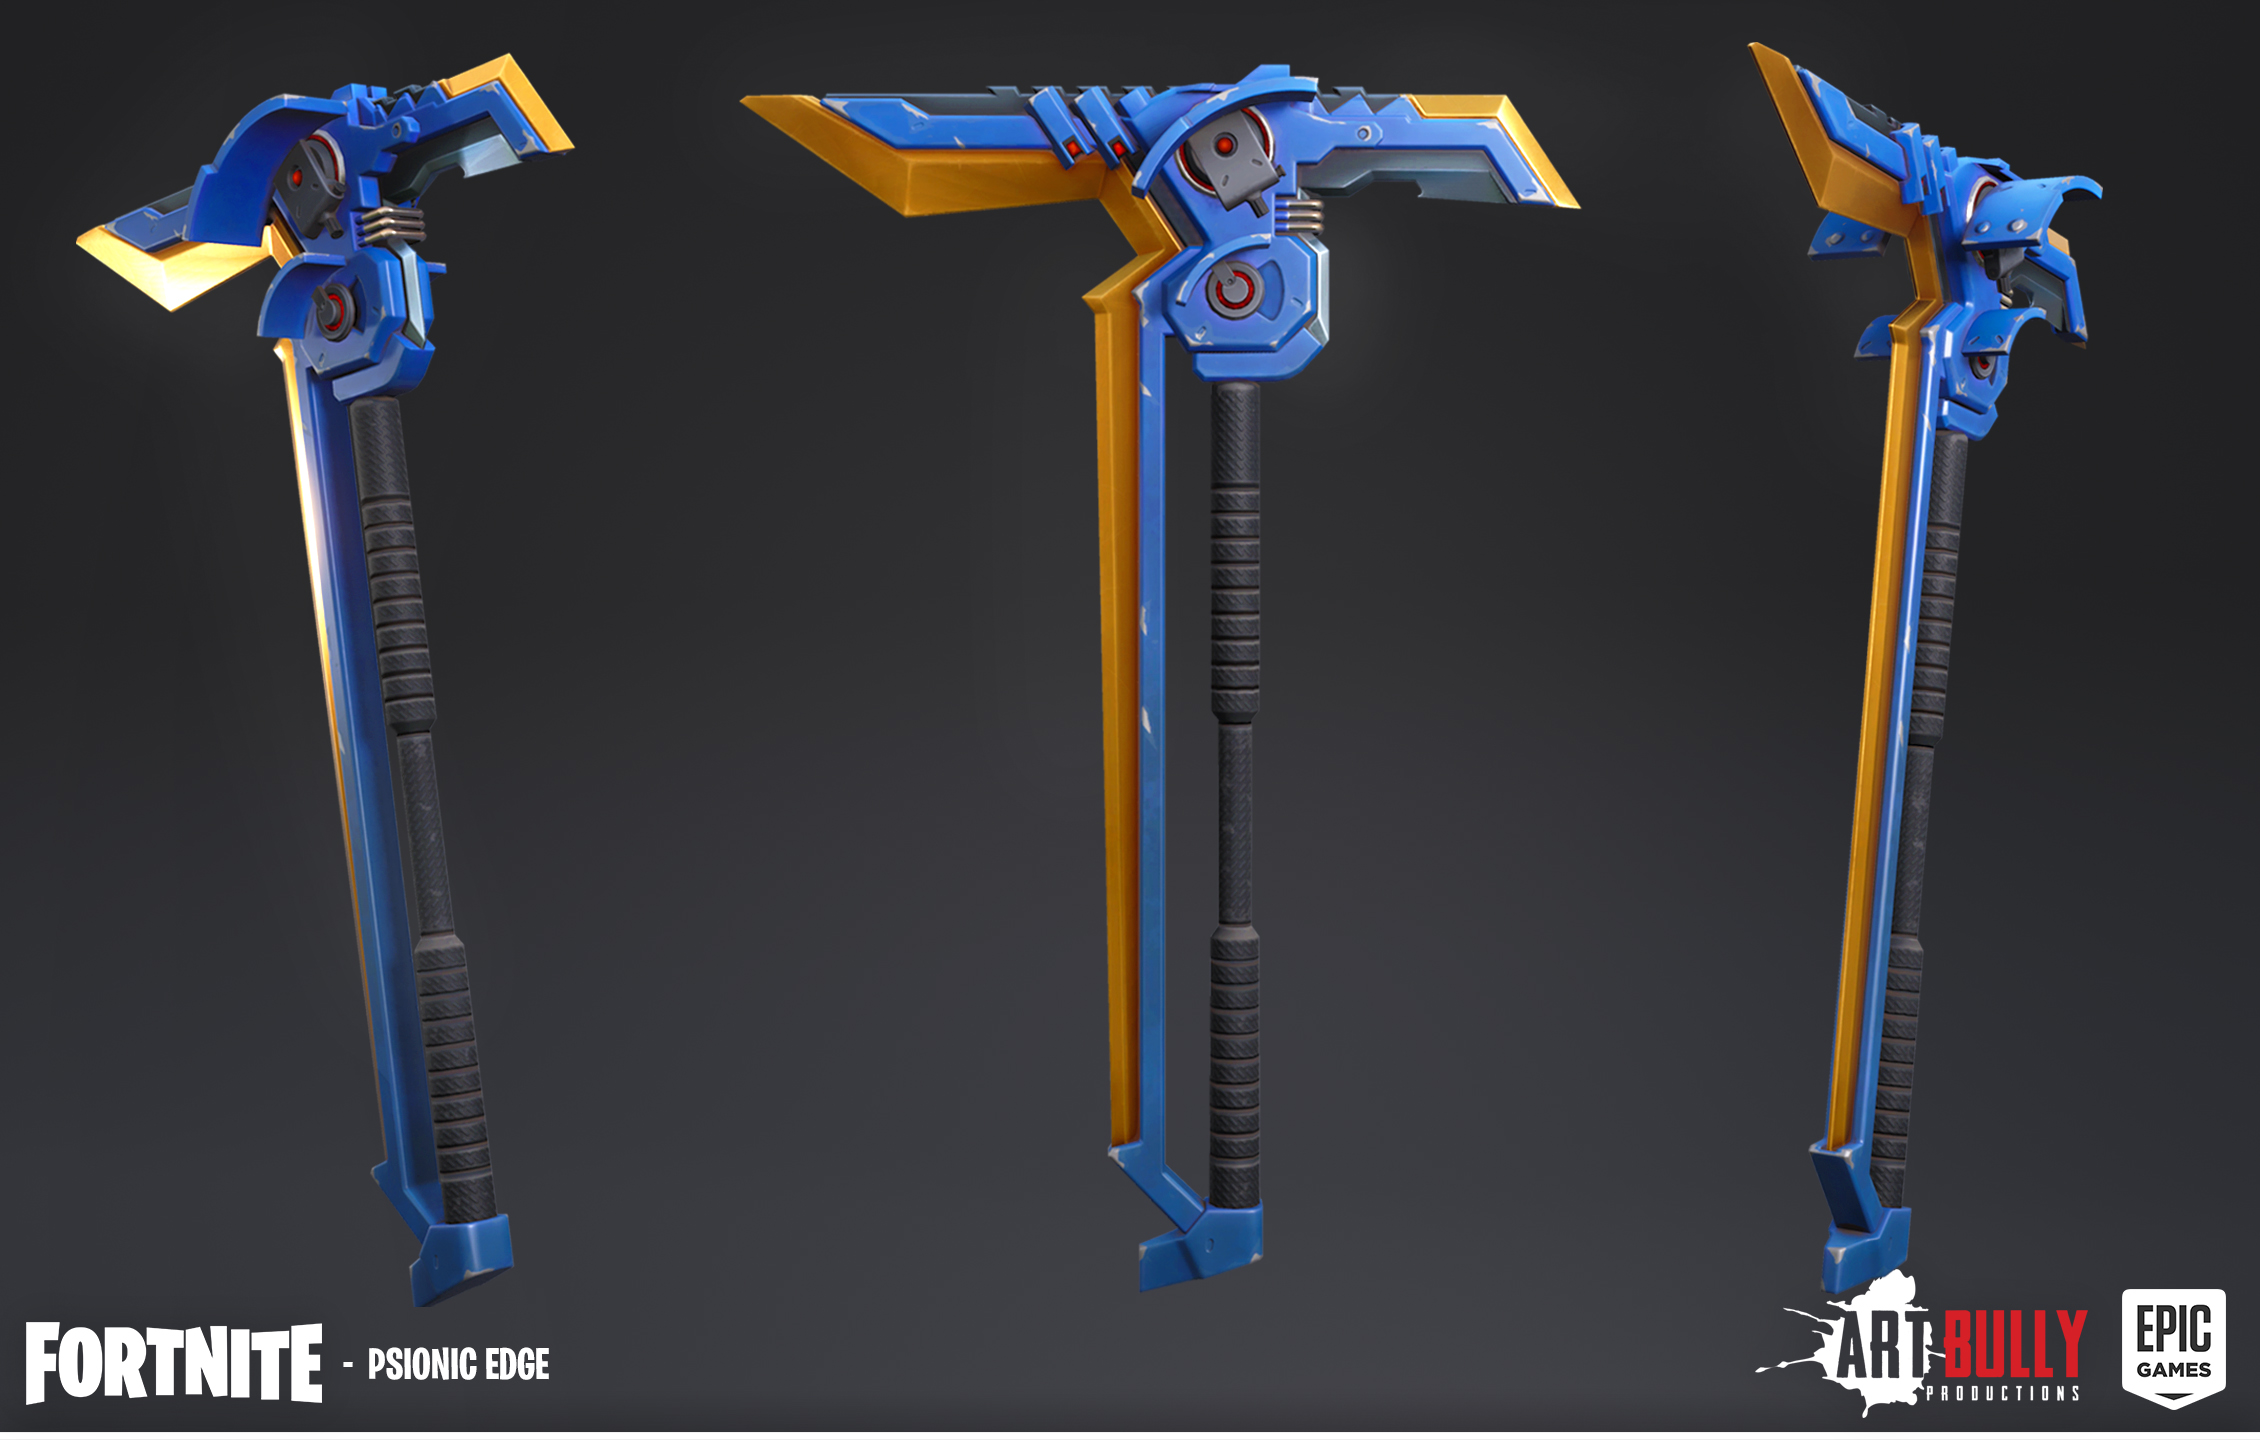 Gray Pickaxes Fortnite Fortnite Pickaxe Gallery Art Bully Productions Llc Game And Cinematic Art Services